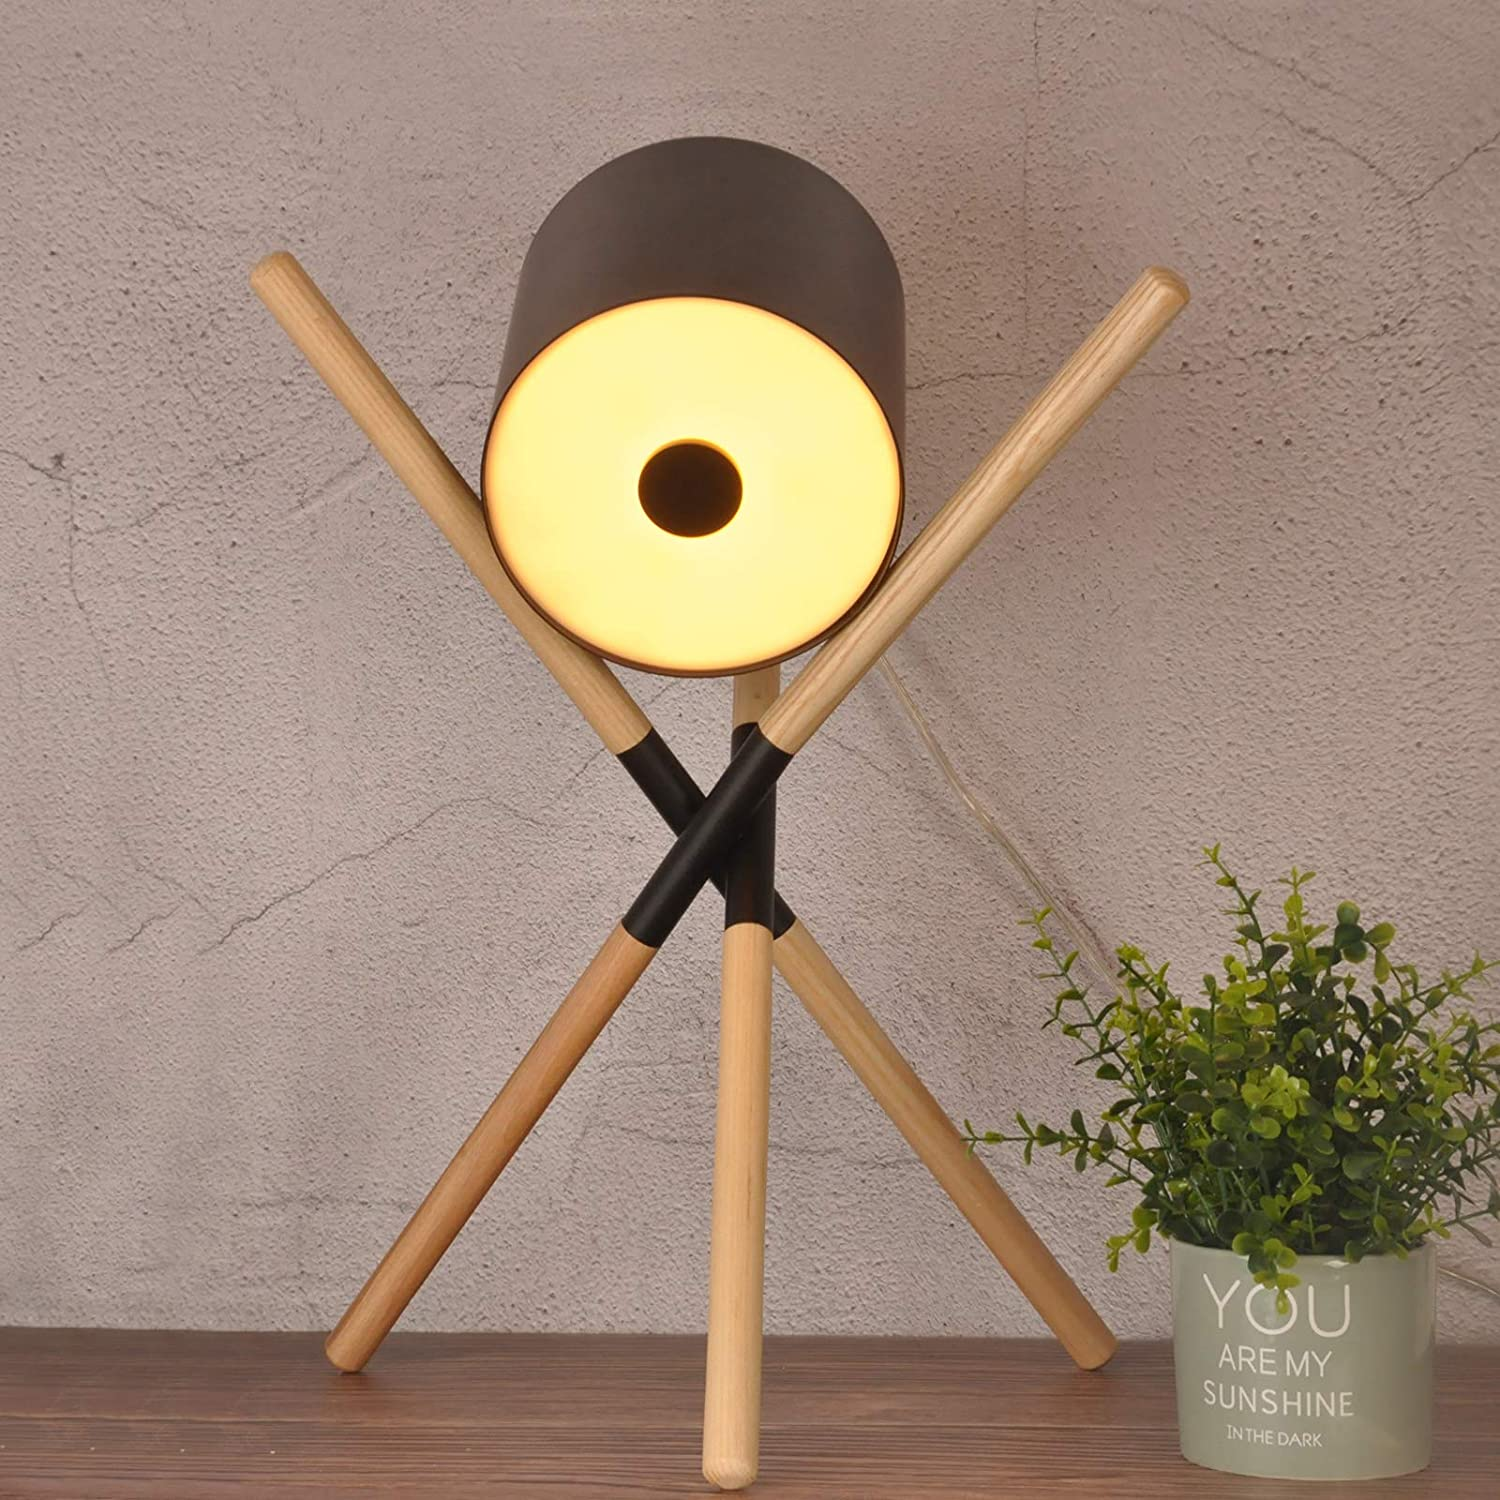 Vintage Table Lamp Adjustable Head Direction Height for Farmhouse Industrial Decor, Tripod Table Lamp Modern Nordic Design Wood Legs for Bedroom Living Room Studio Cafe, Black(No Bulb)